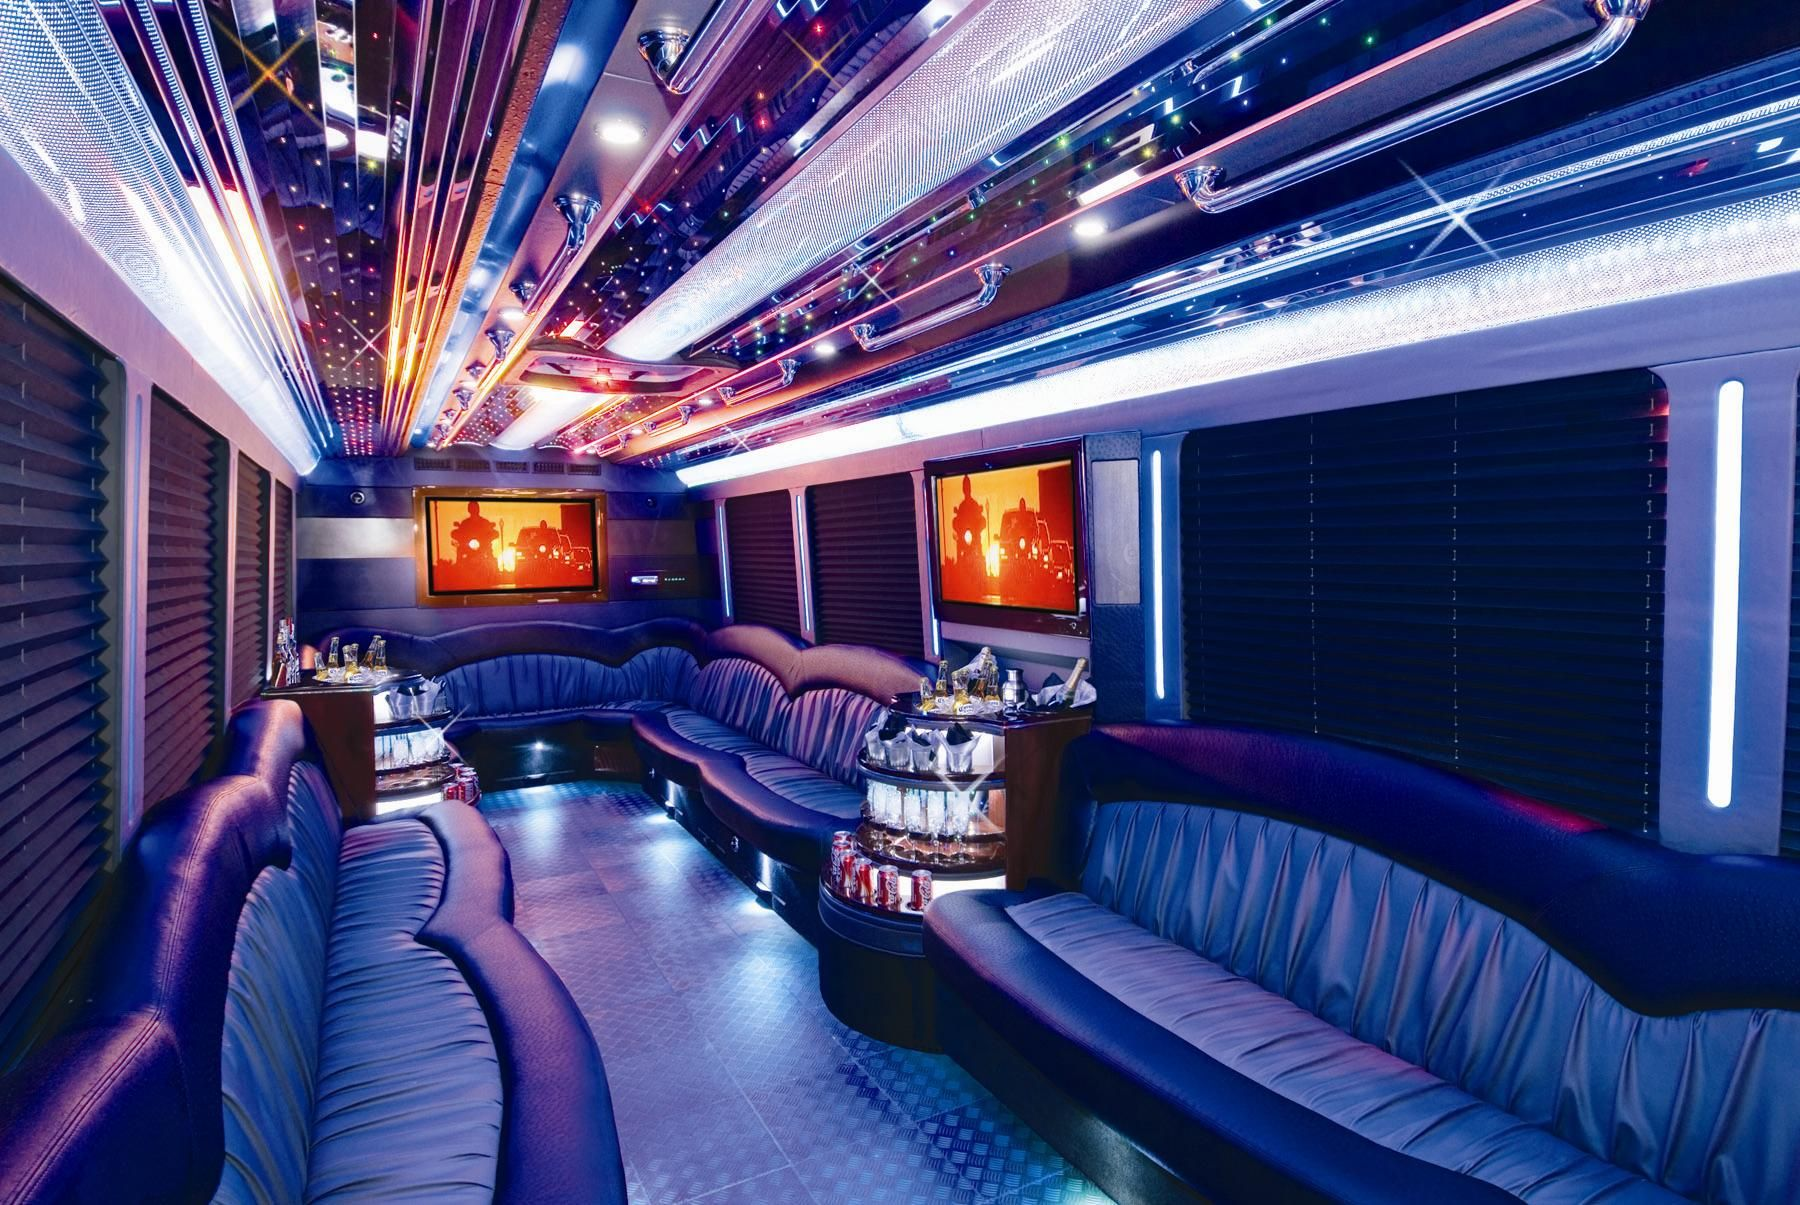 Have A Party Of 30 32 People Outfitted With Class Our Bus Can Fit Your Needs Www Megacity Com Party Bus Limo Limo Bus